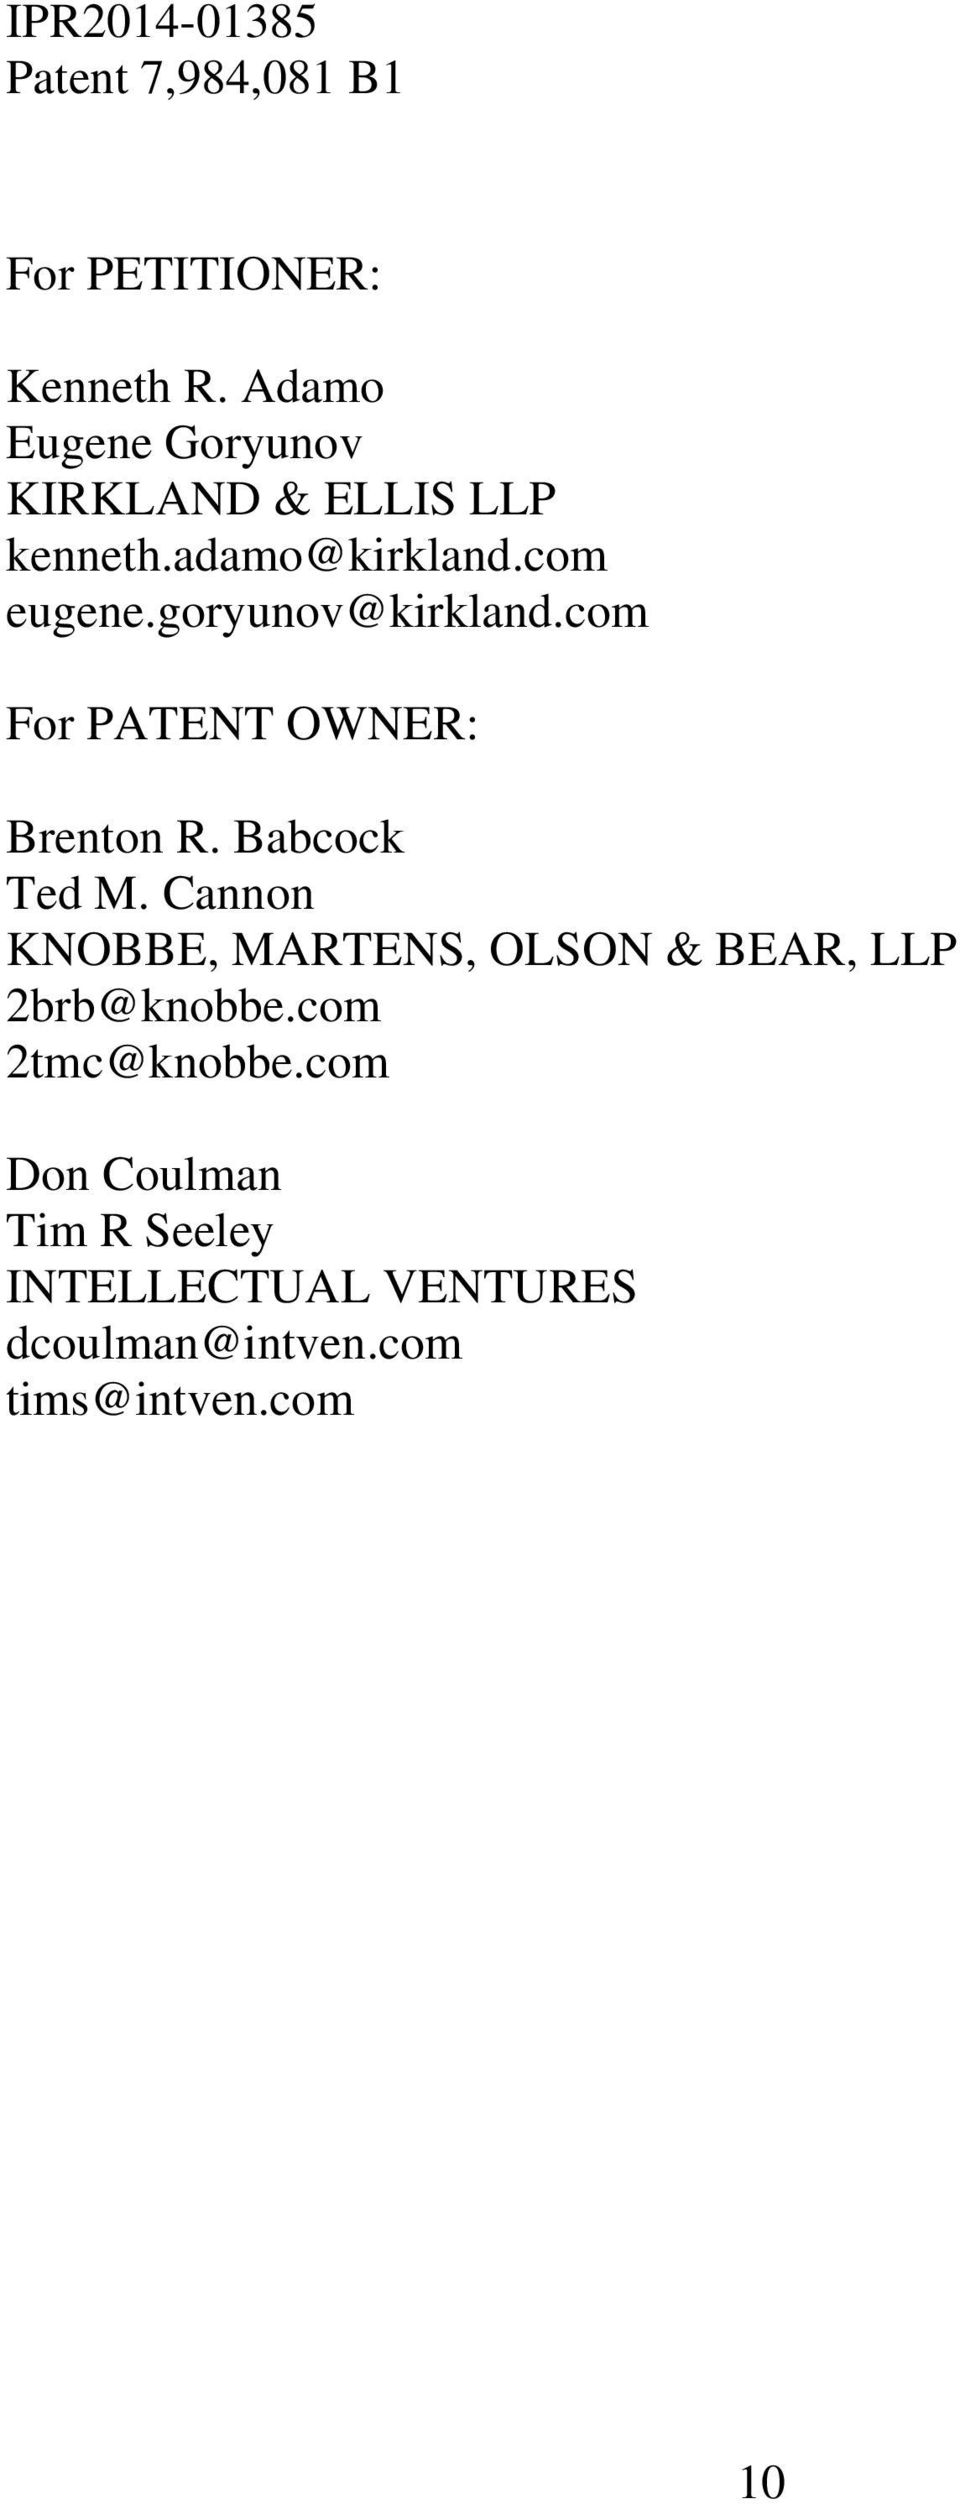 Babcock Ted M. Cannon KNOBBE, MARTENS, OLSON & BEAR, LLP 2brb@knobbe.